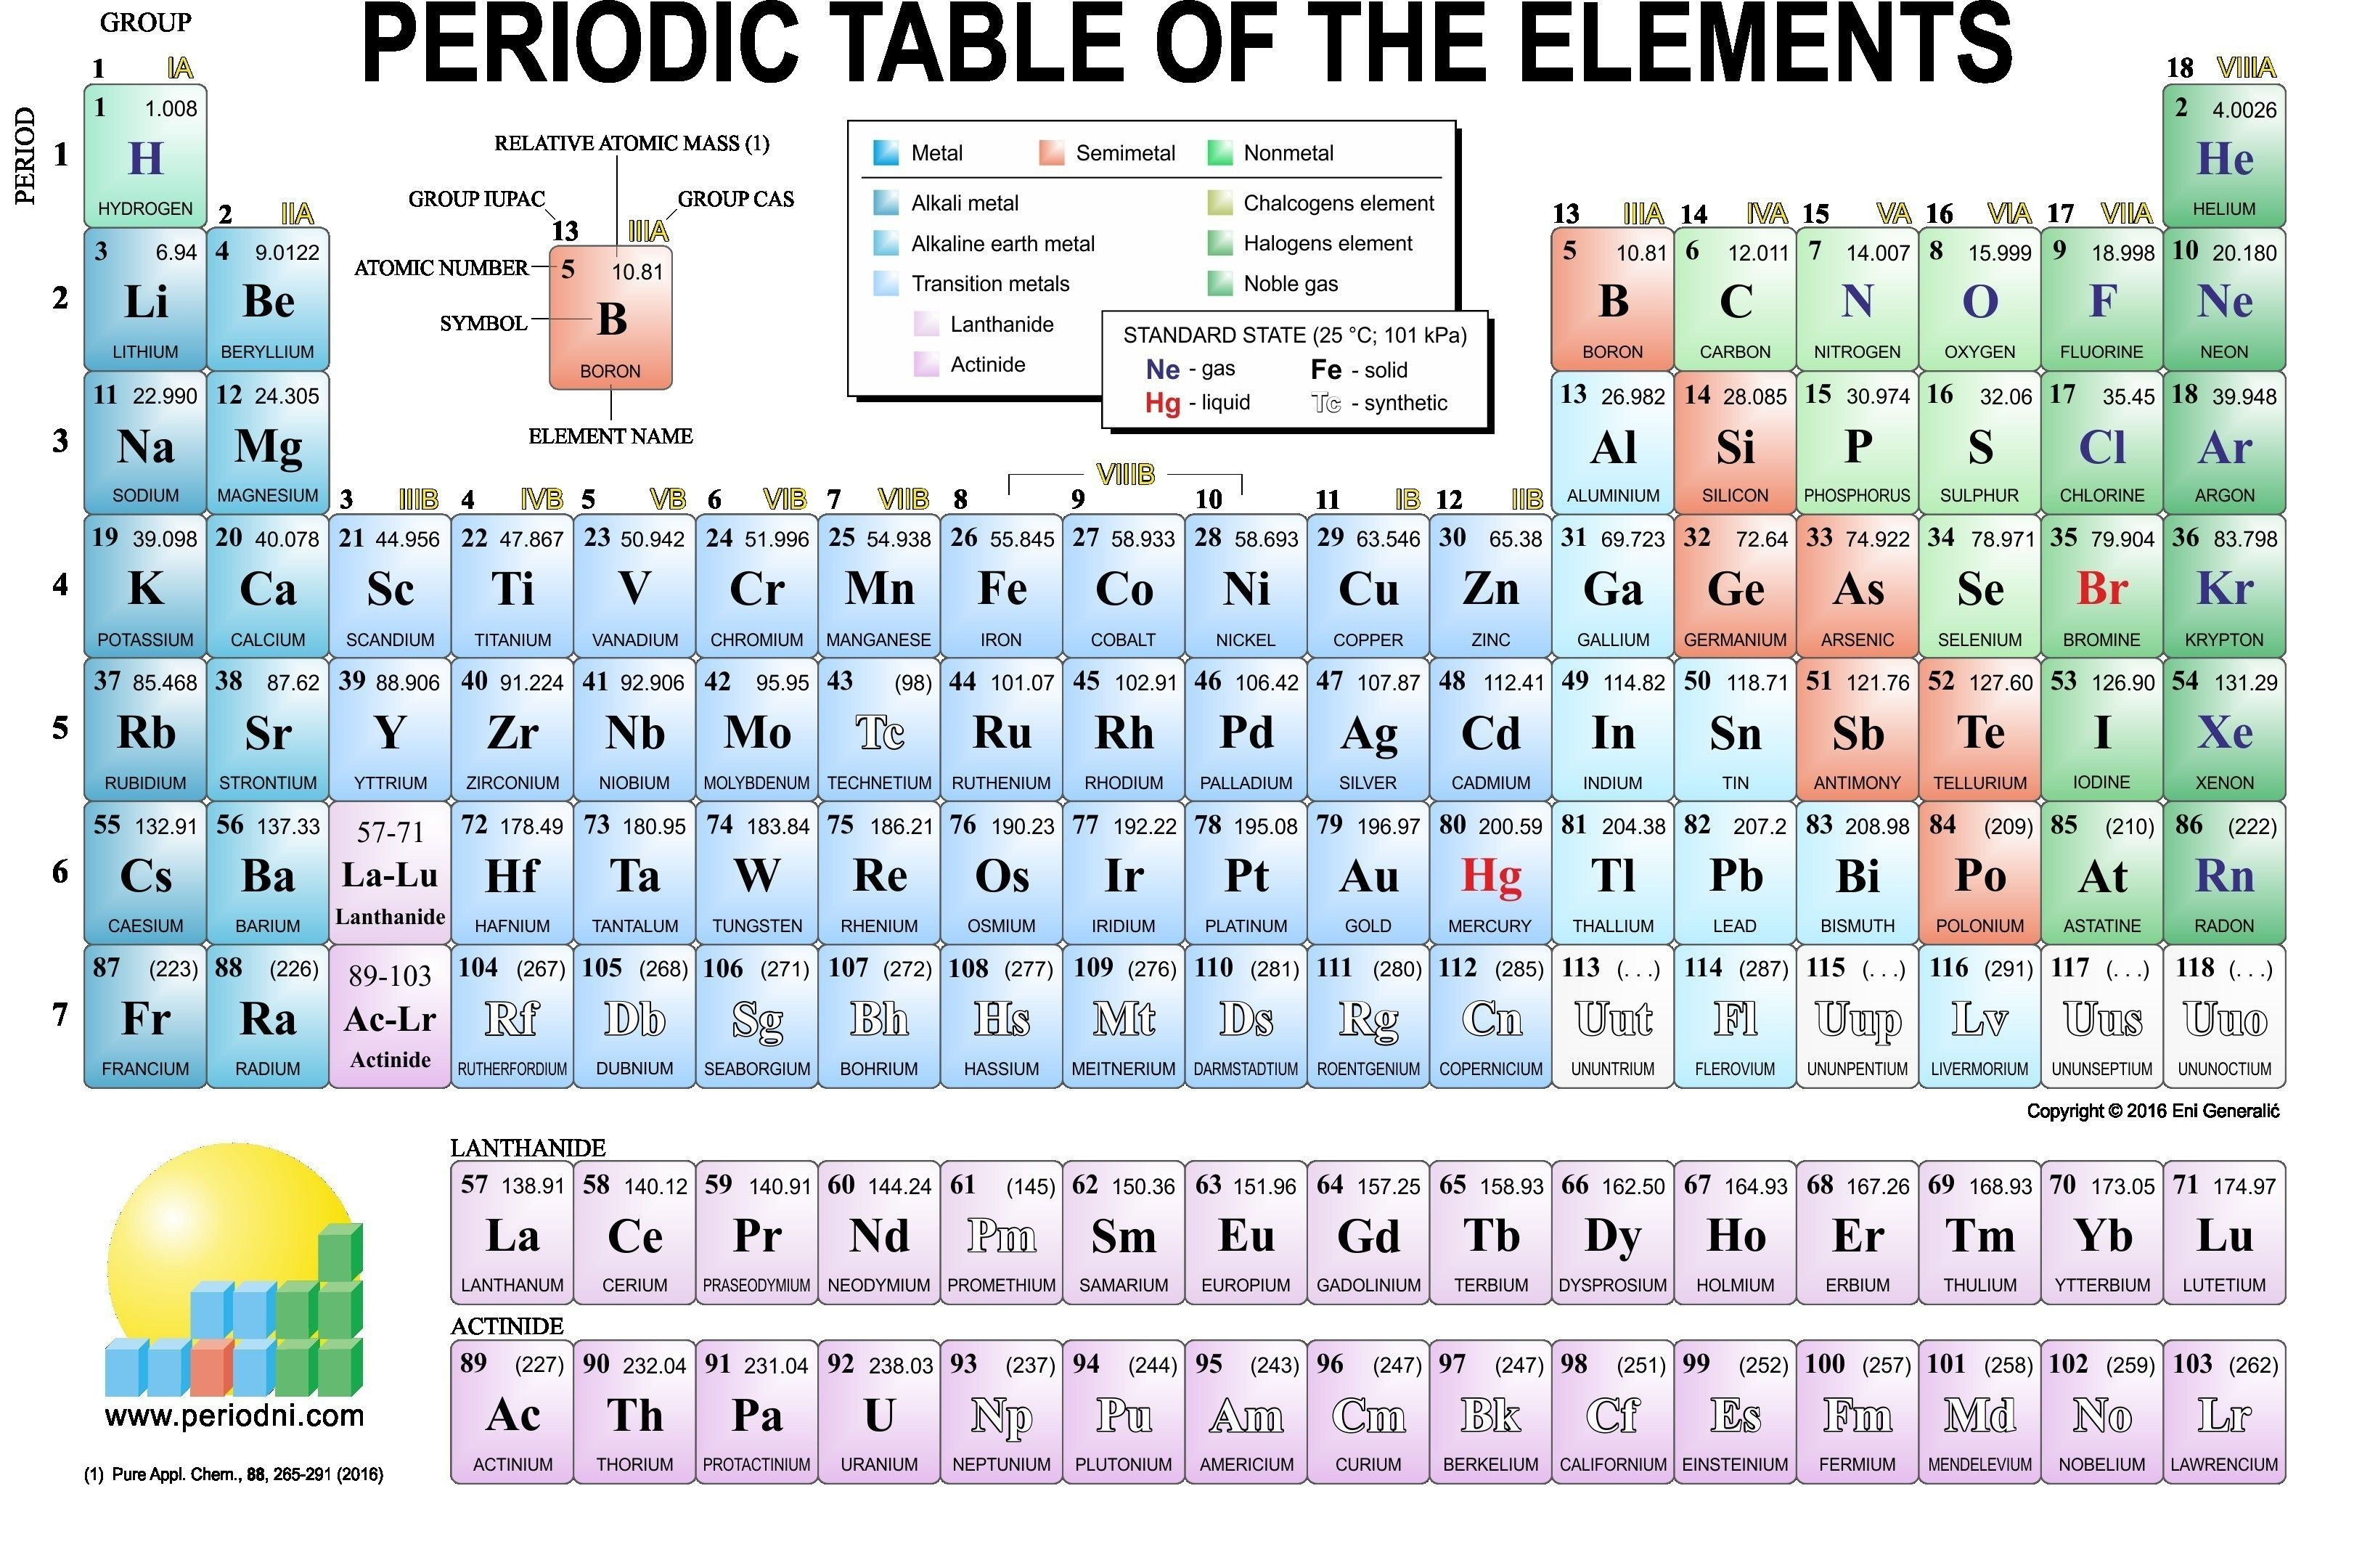 New Learn the Periodic Table song Lyrics tablepriodic